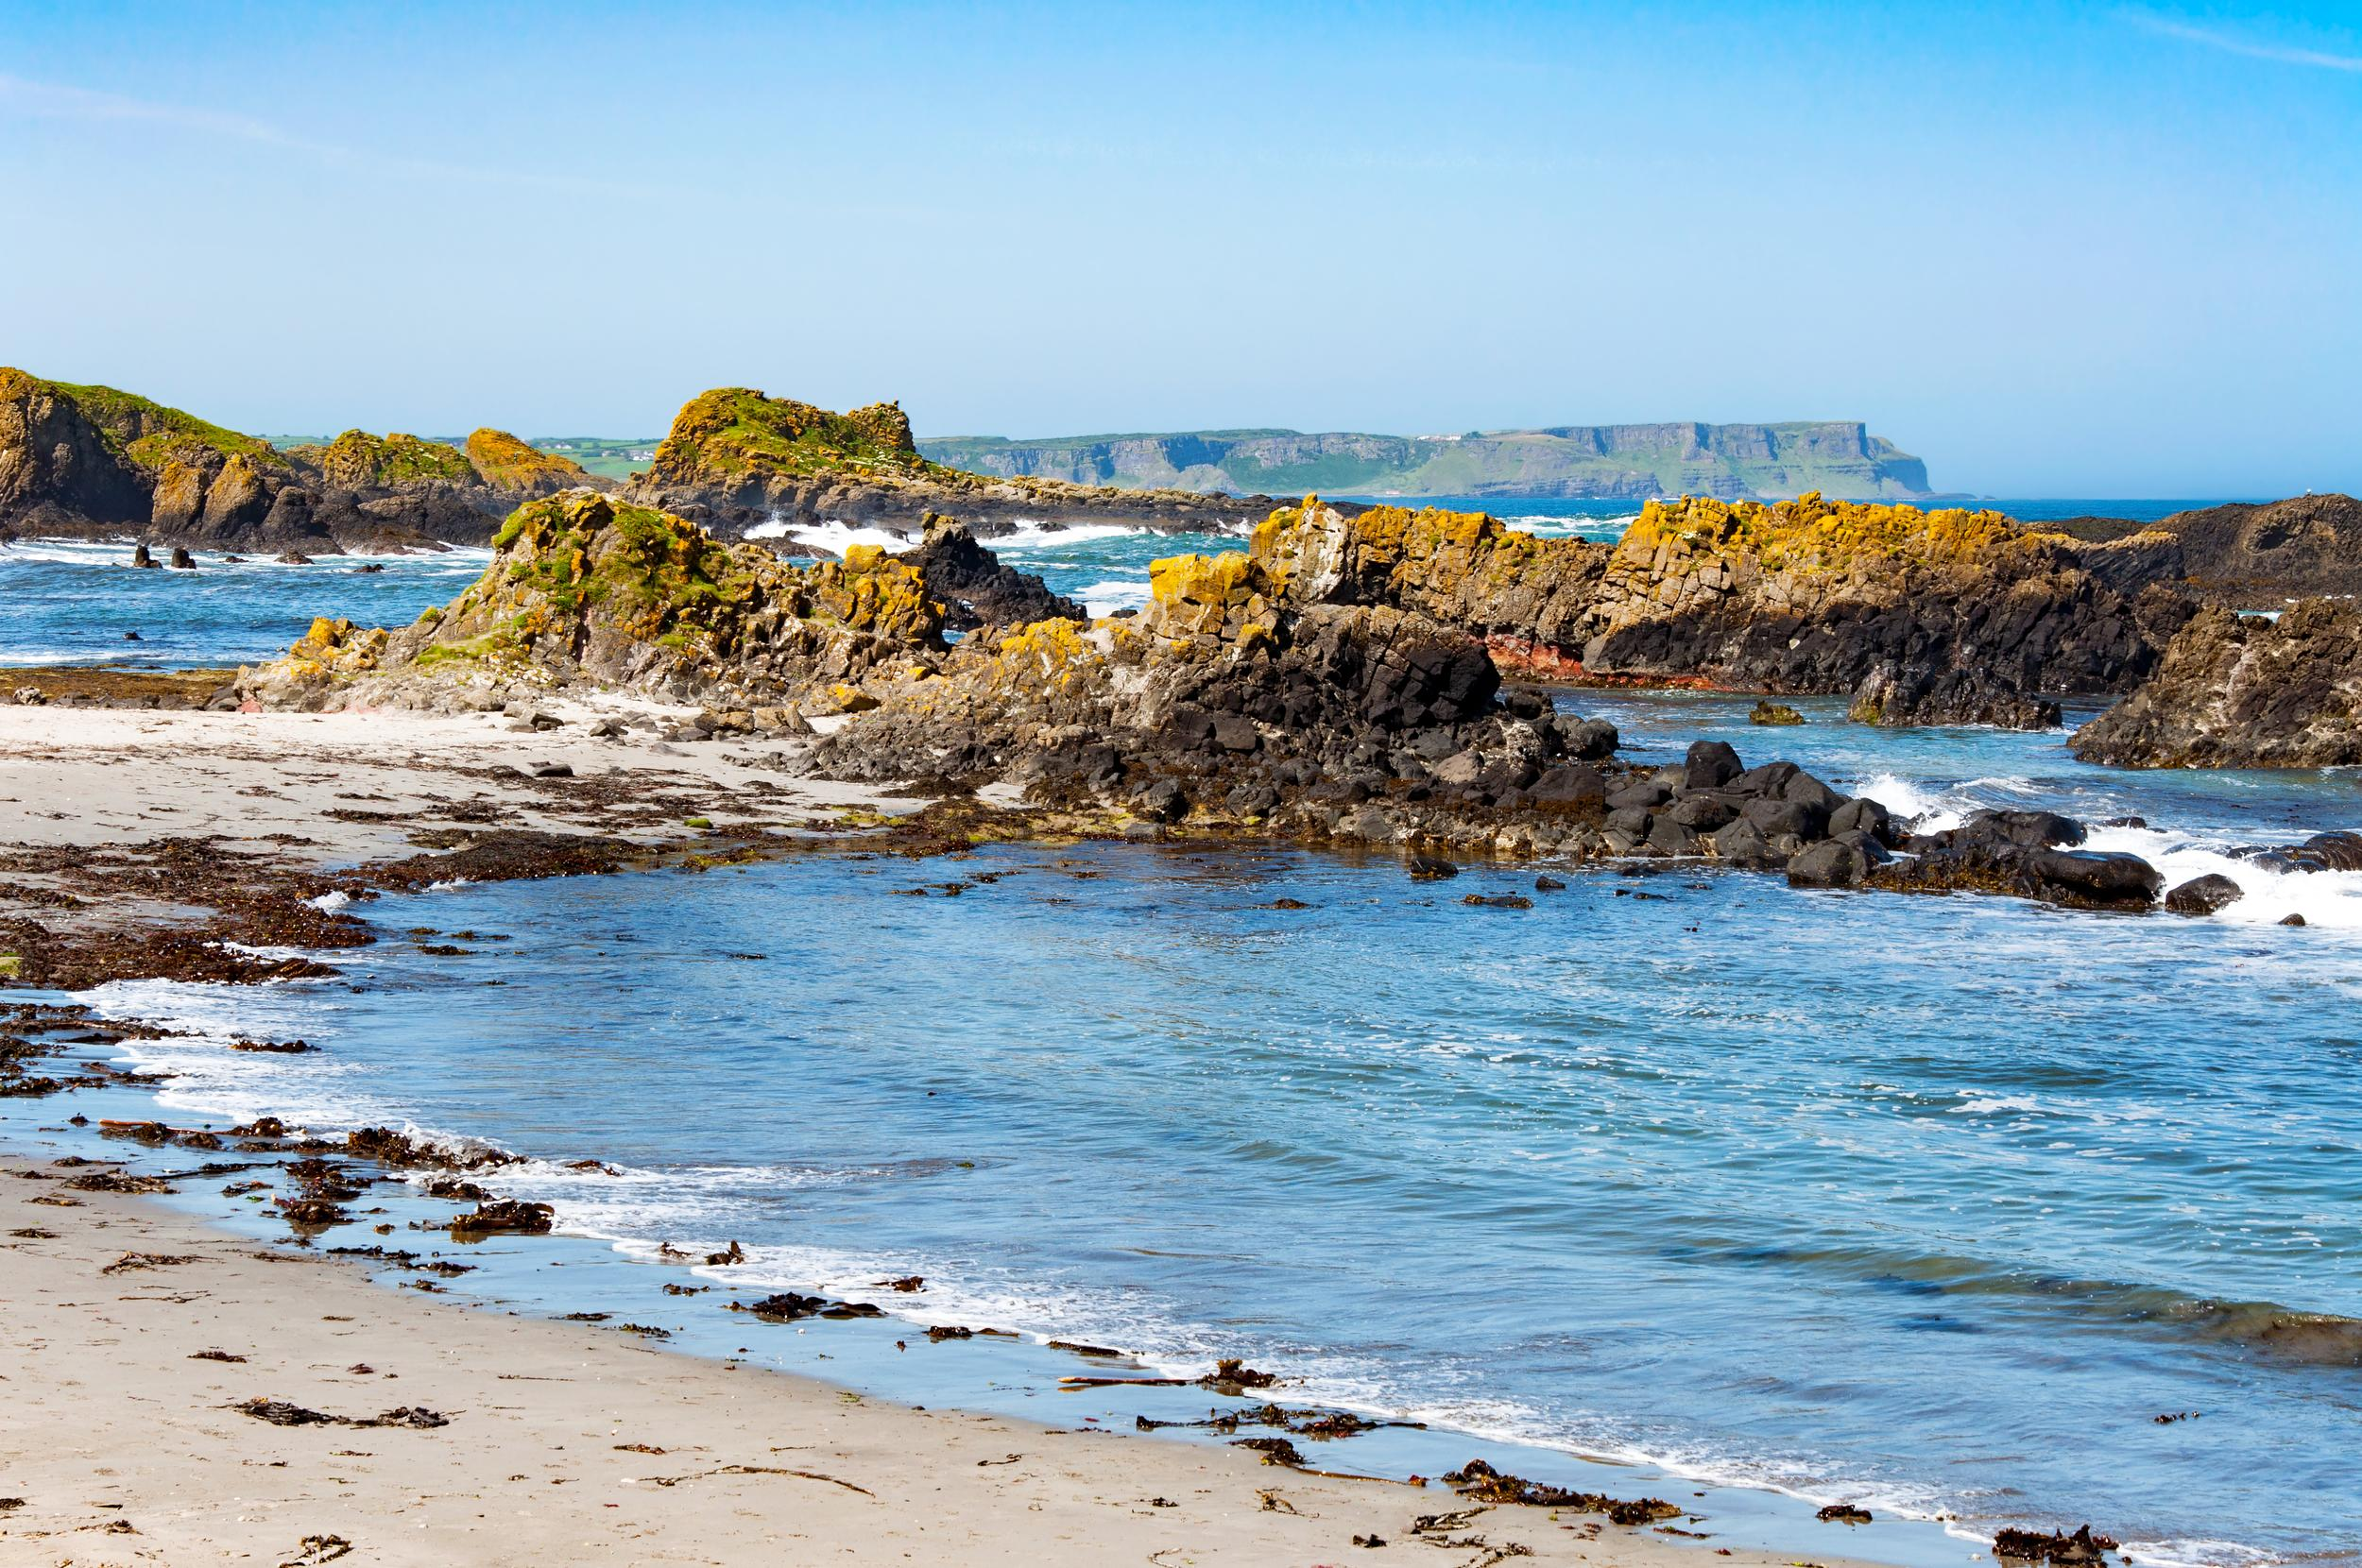 """<p><strong>GOT Location</strong>: Iron Islands</p>  <p><strong>Real life location</strong>:Ballintoy Harbour, Northern Ireland</p>  <p>If you're visiting the real life version of the Iron Islands, might as well shout """"what is dead may never die,"""" right?</p>  <p><a href=""""https://fave.co/2GqMHoQ""""><strong>Book your trip.</strong></a></p>"""